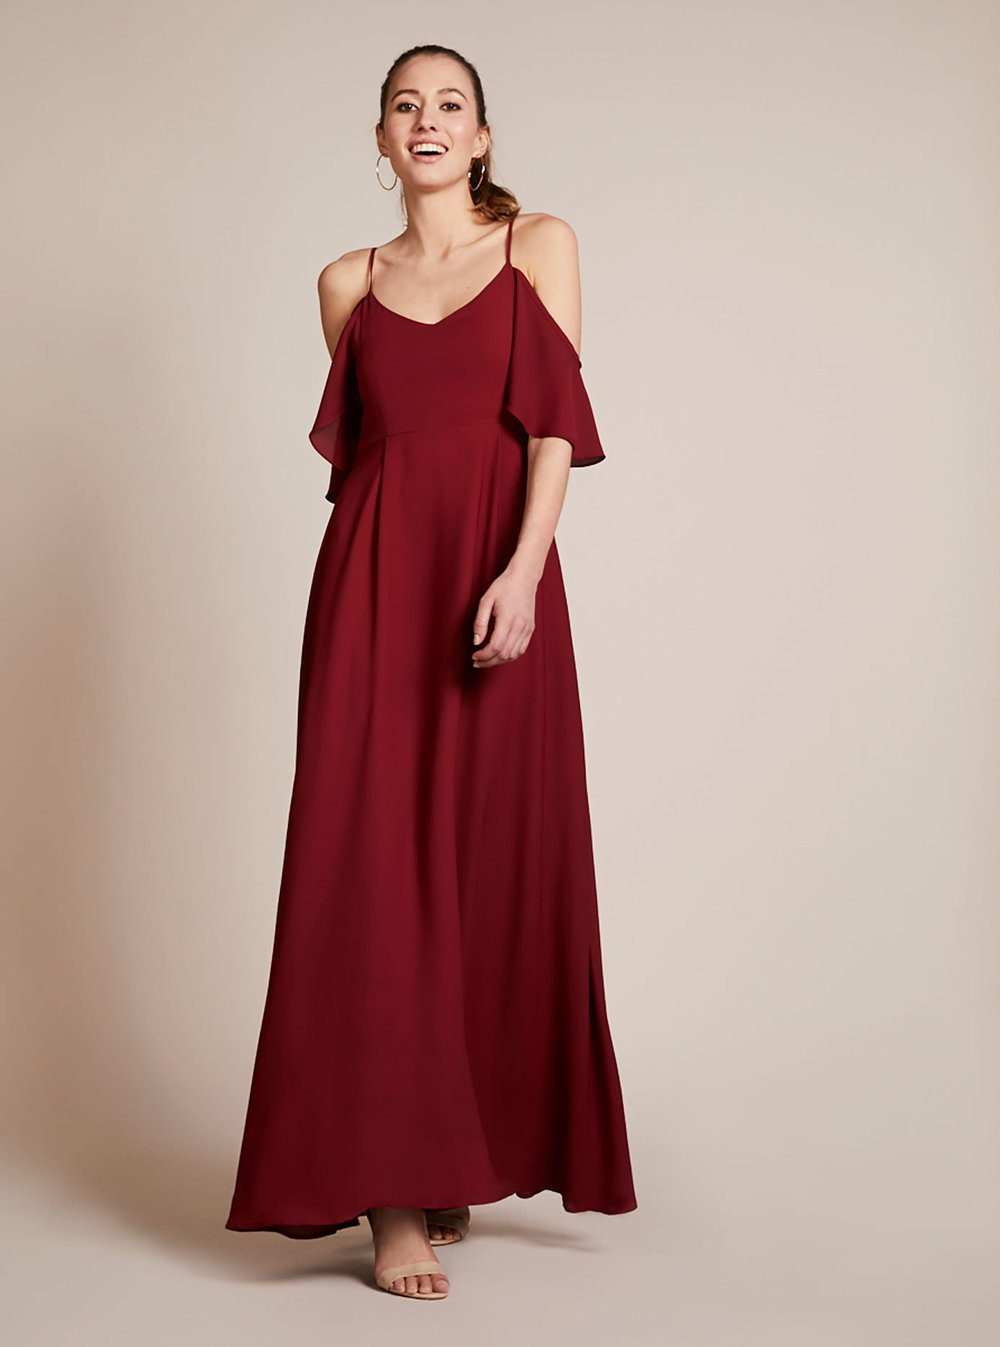 REWRITTEN | MADE IN LONDON - Dresses for the modern bridesmaid or best dressed guest